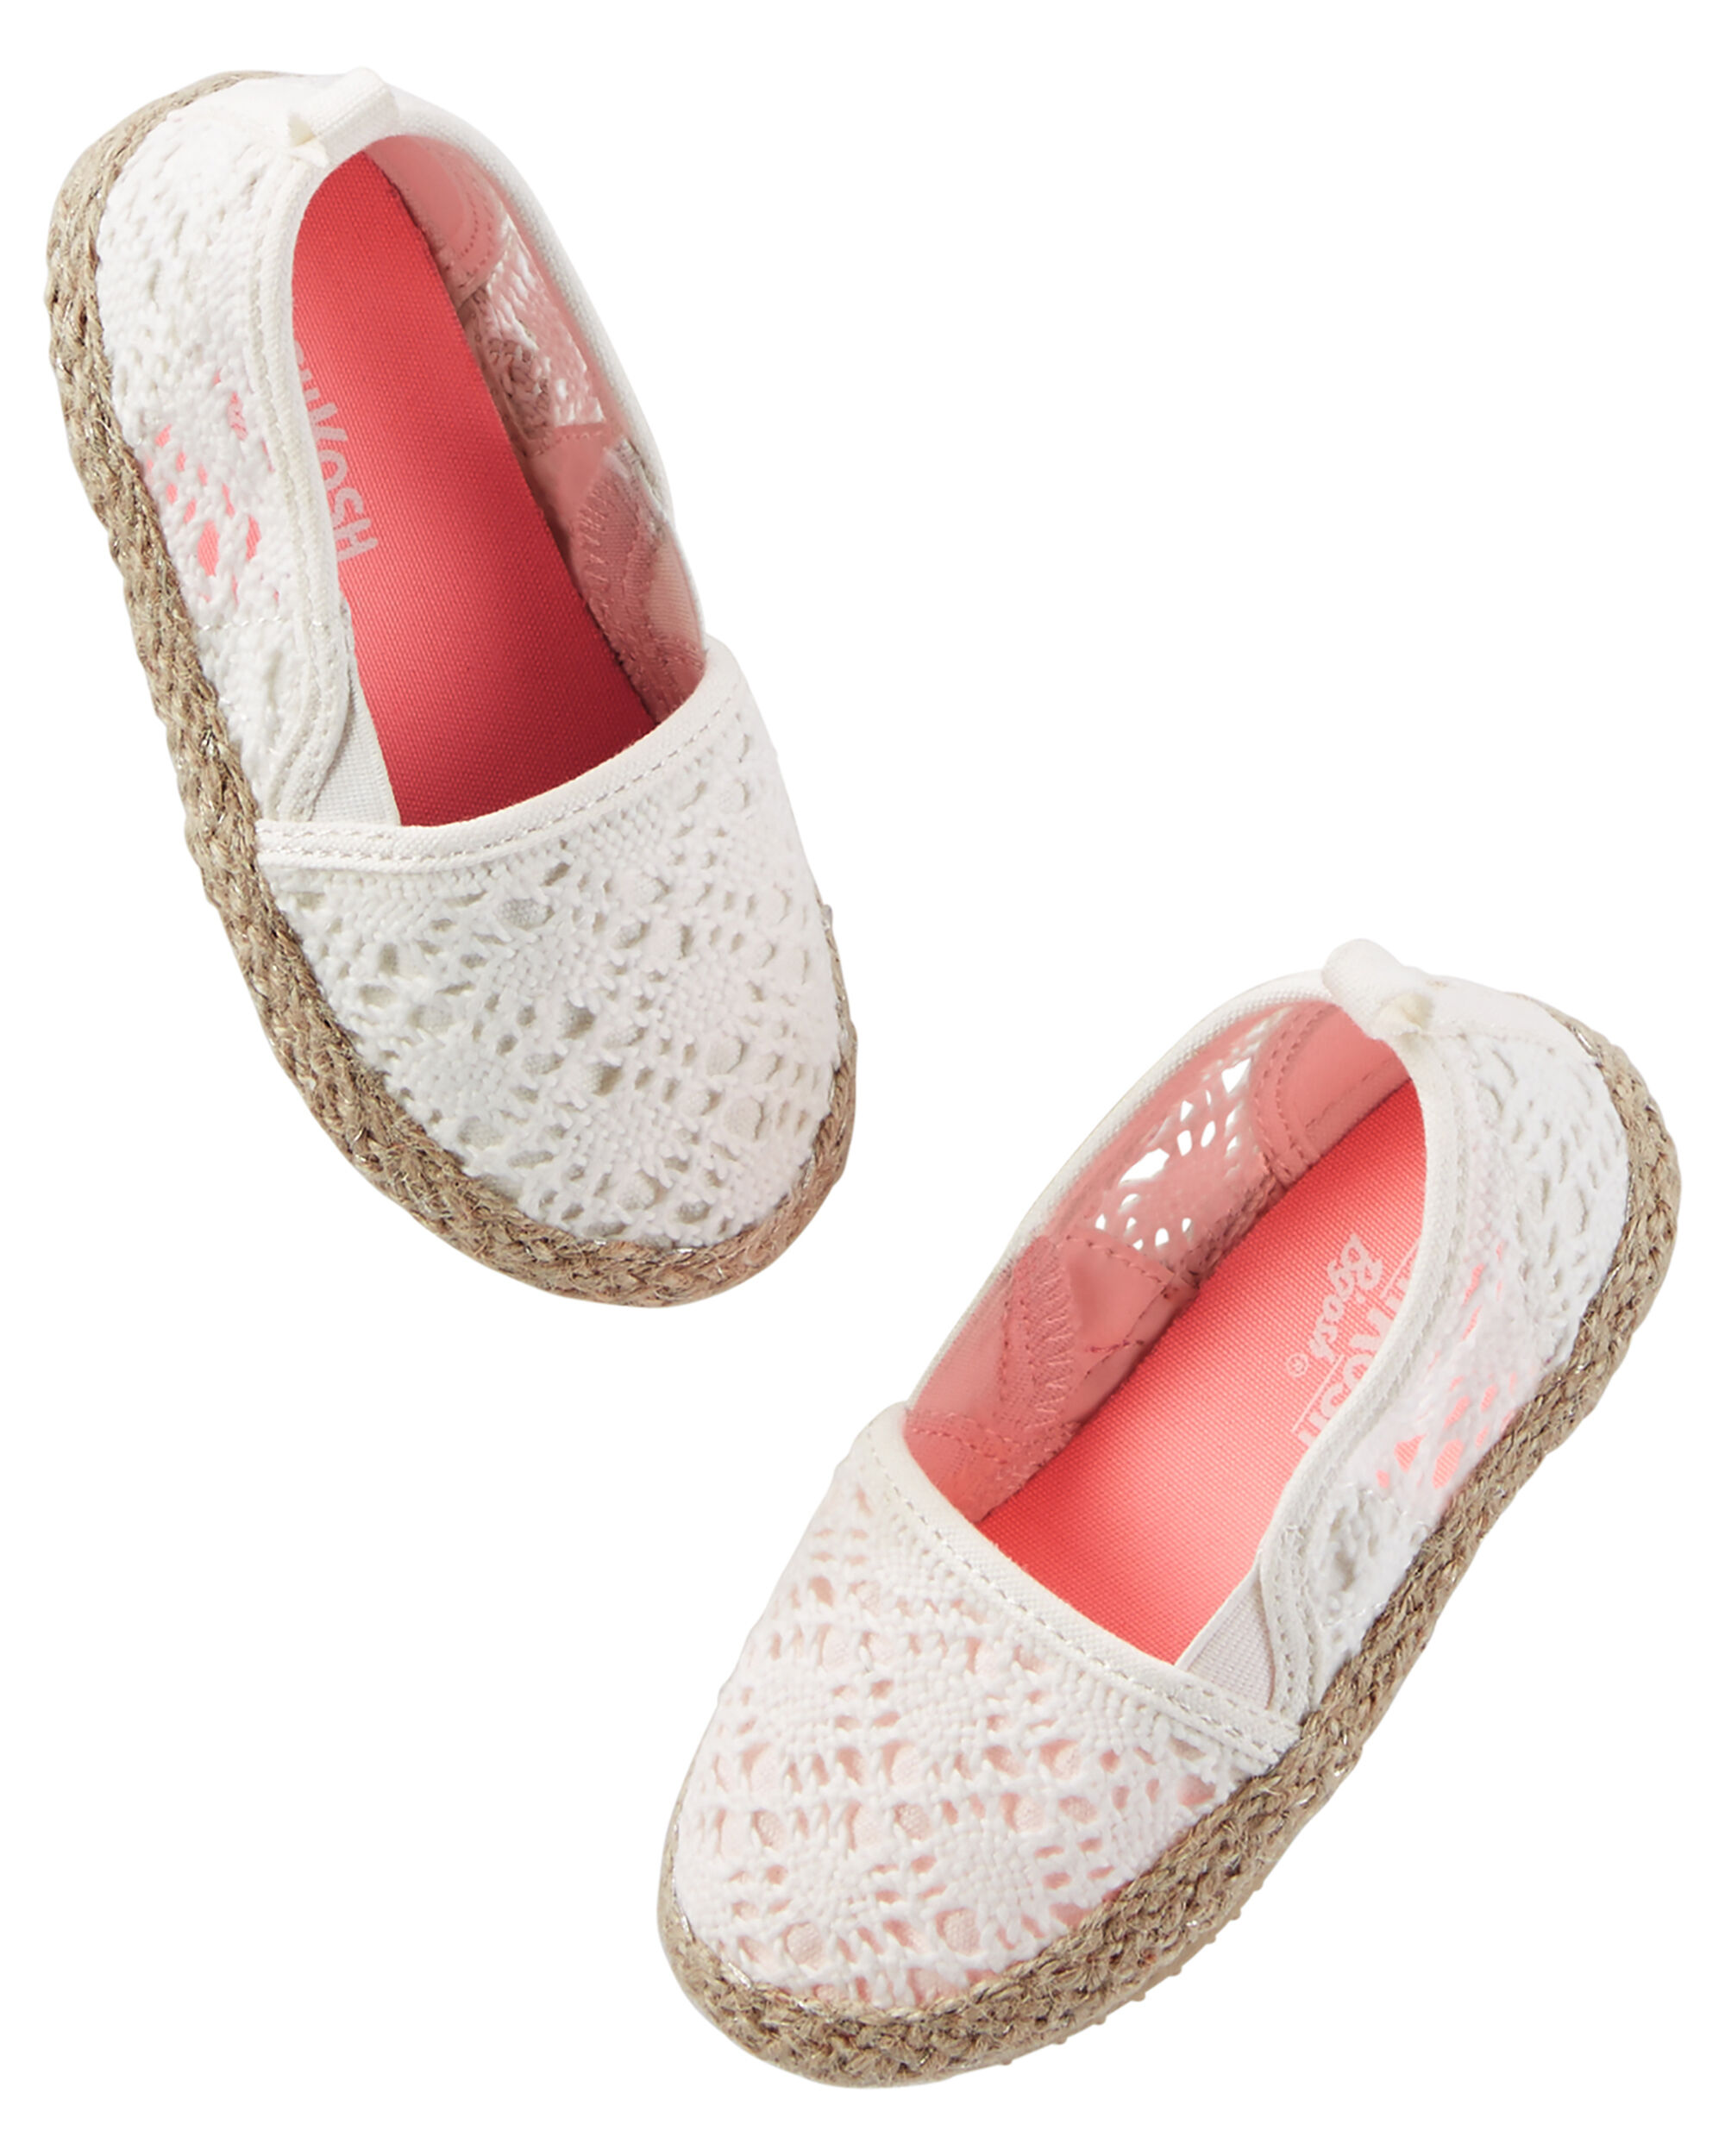 OshKosh Crocheted Espadrilles